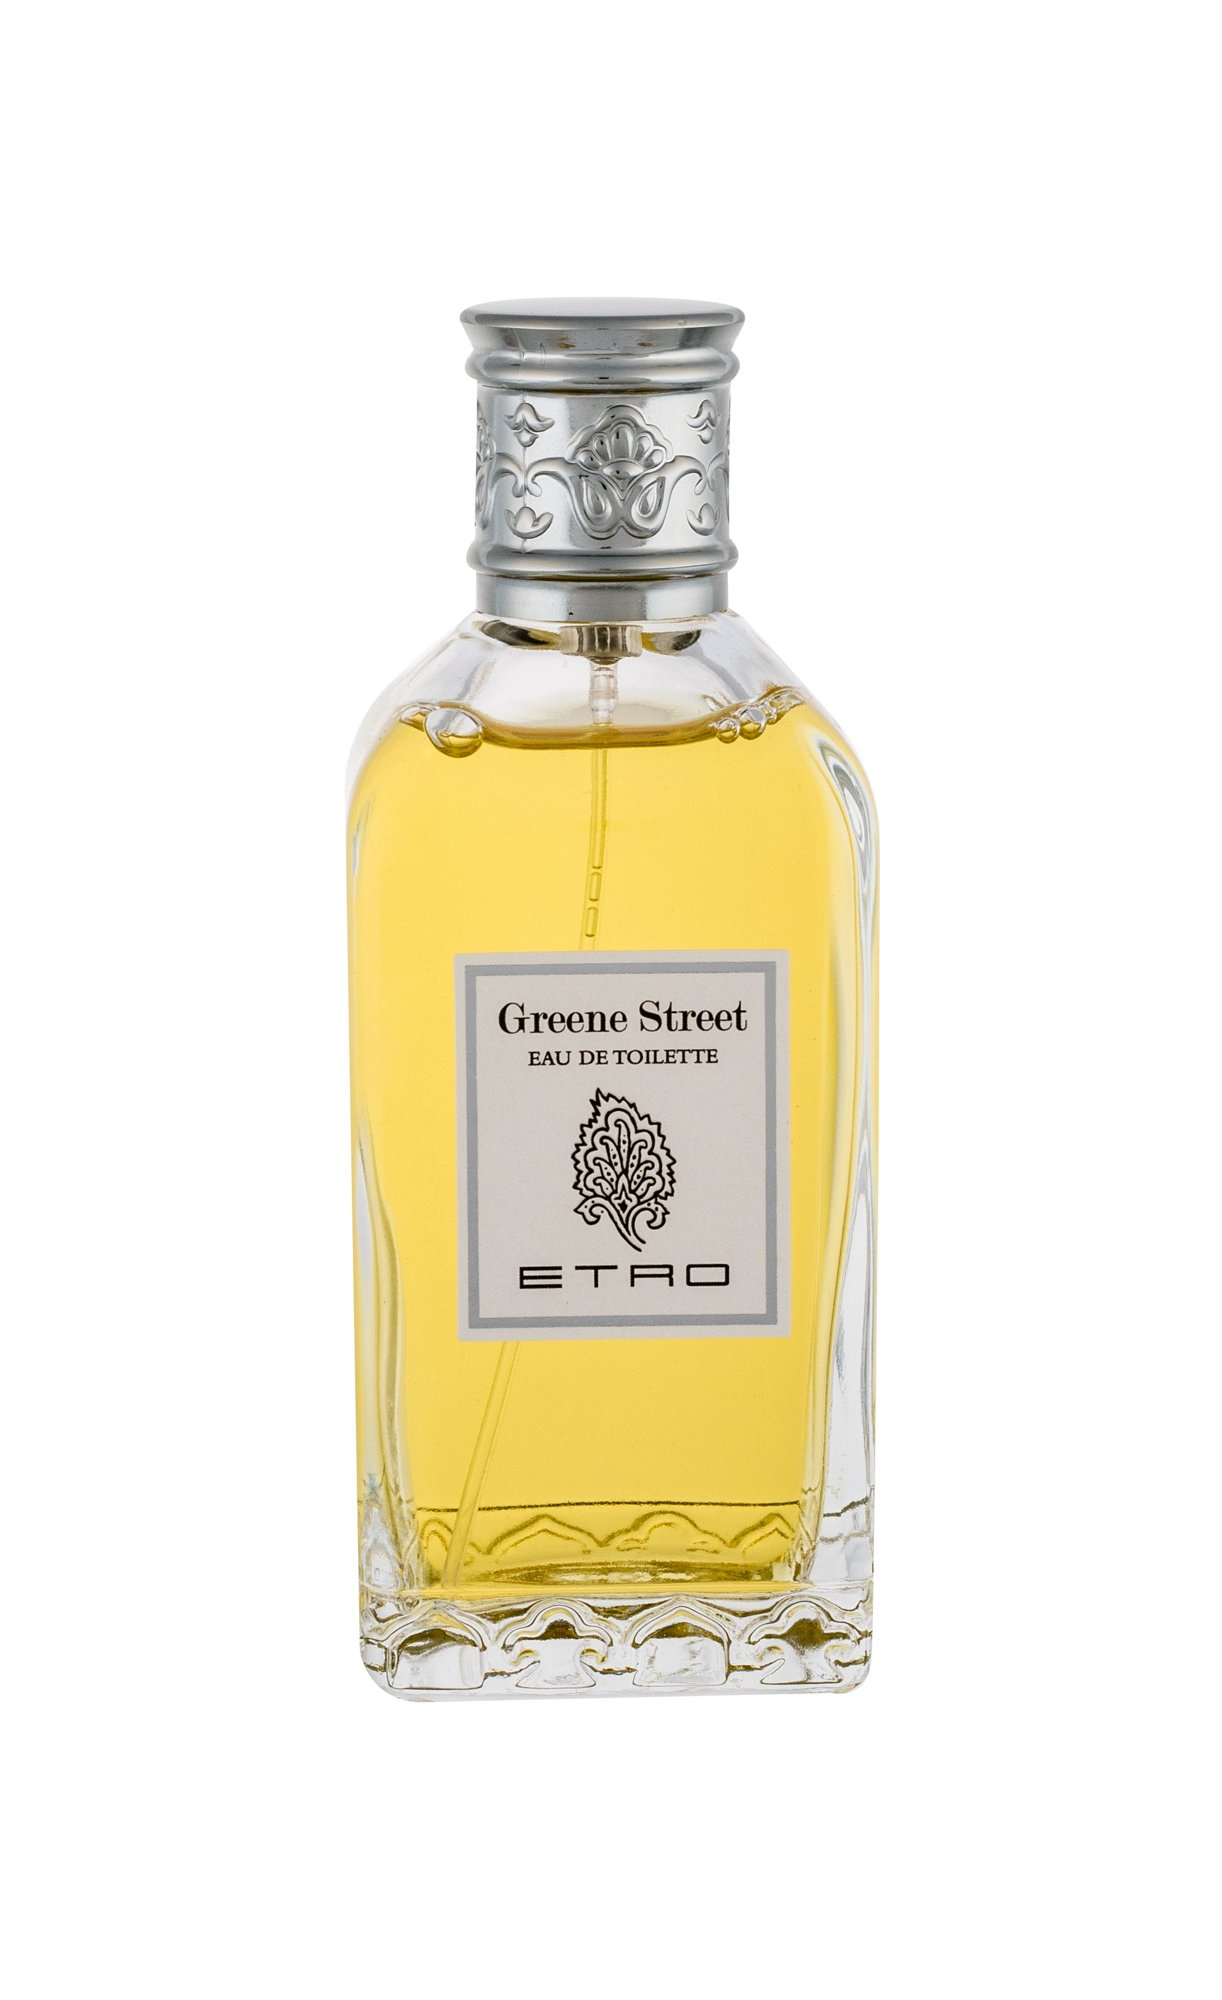 ETRO Greene Street Eau de Toilette 100ml